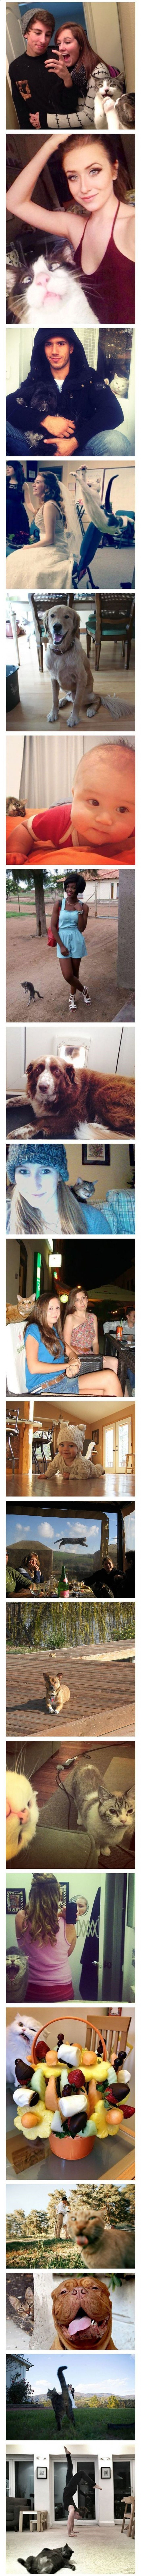 20 Funny Cat Photobombs